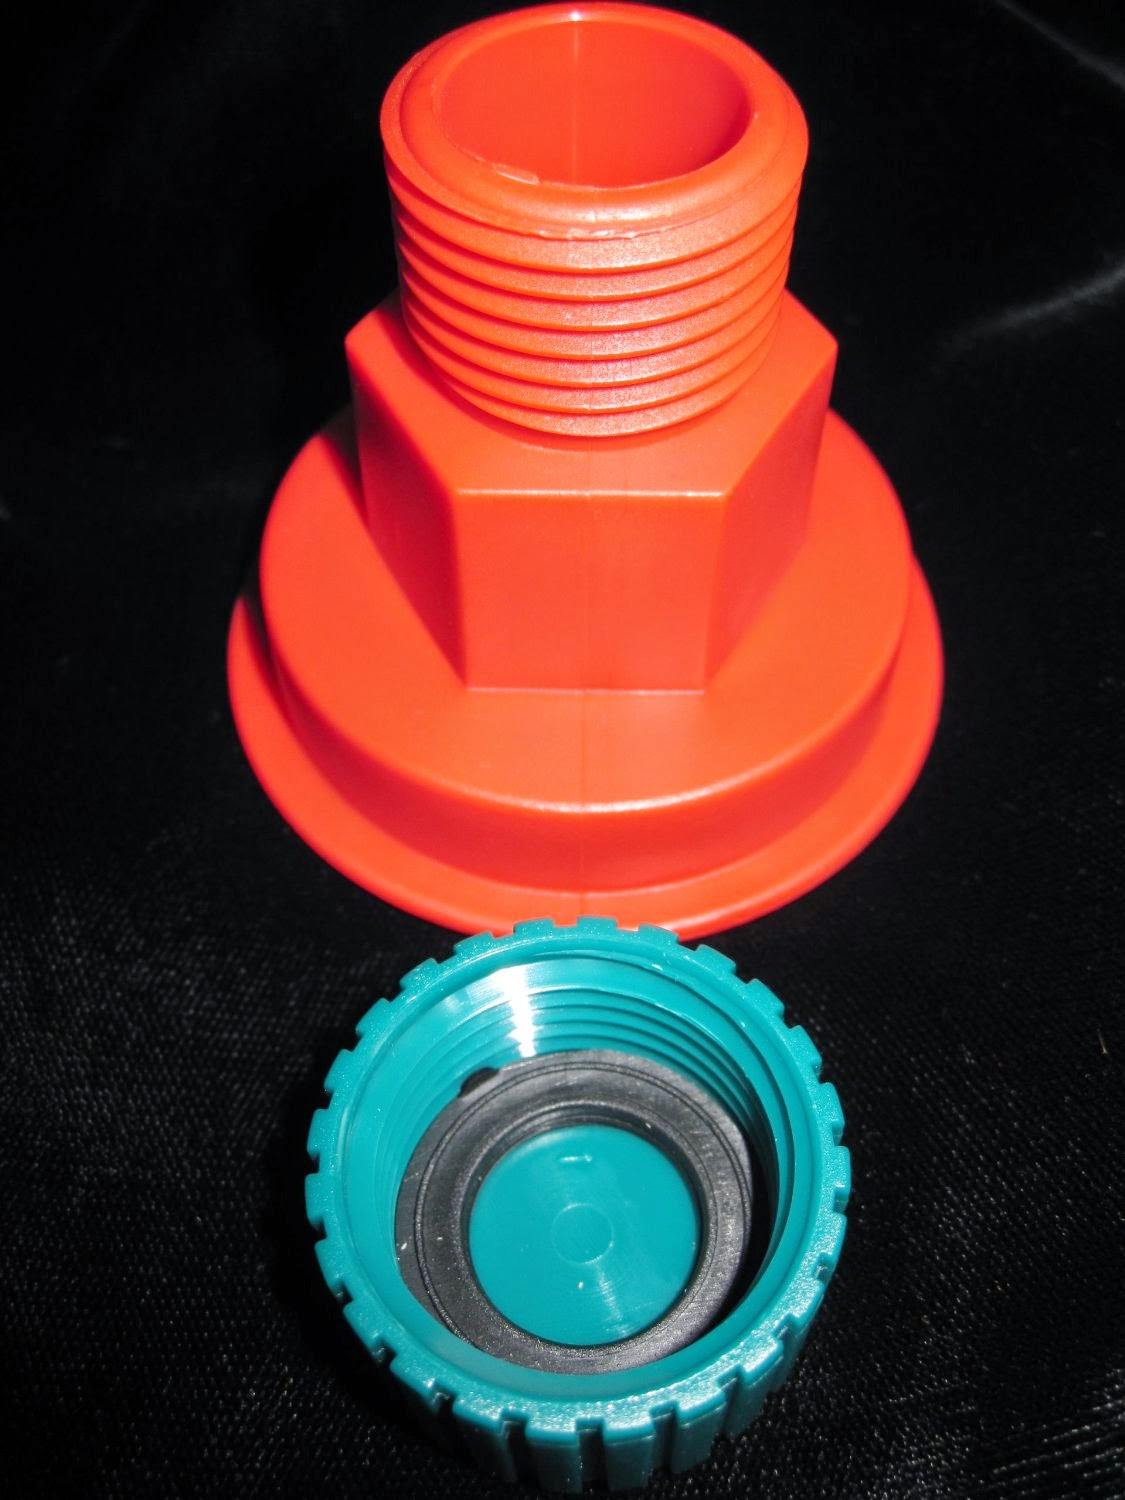 ridgid wet dry vac hose to drain adapter and cap - Shop Vac Hose